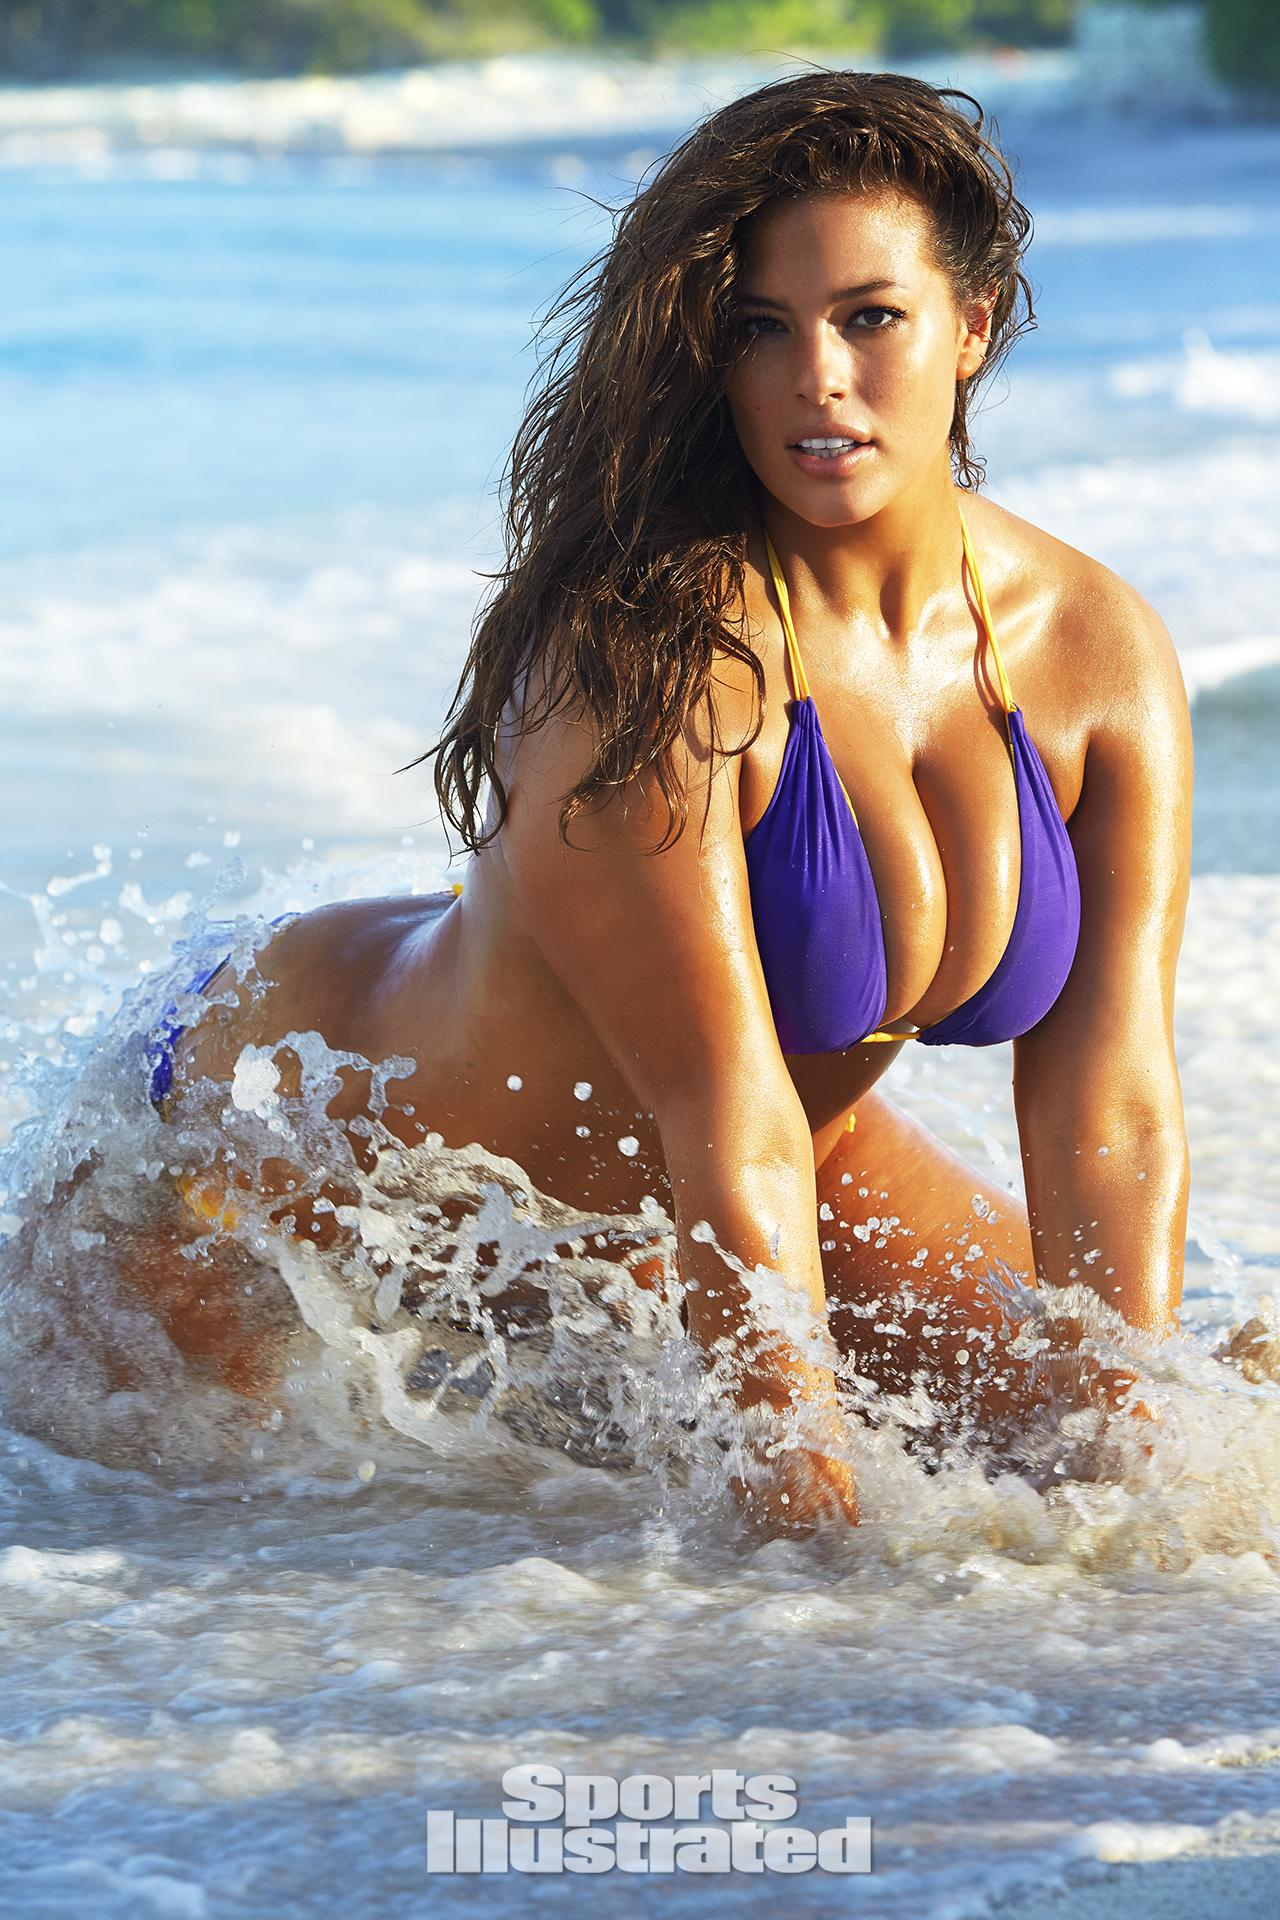 sports-illustrated-swimsuit-2016-ashley-graham-2016-photo-sports ...